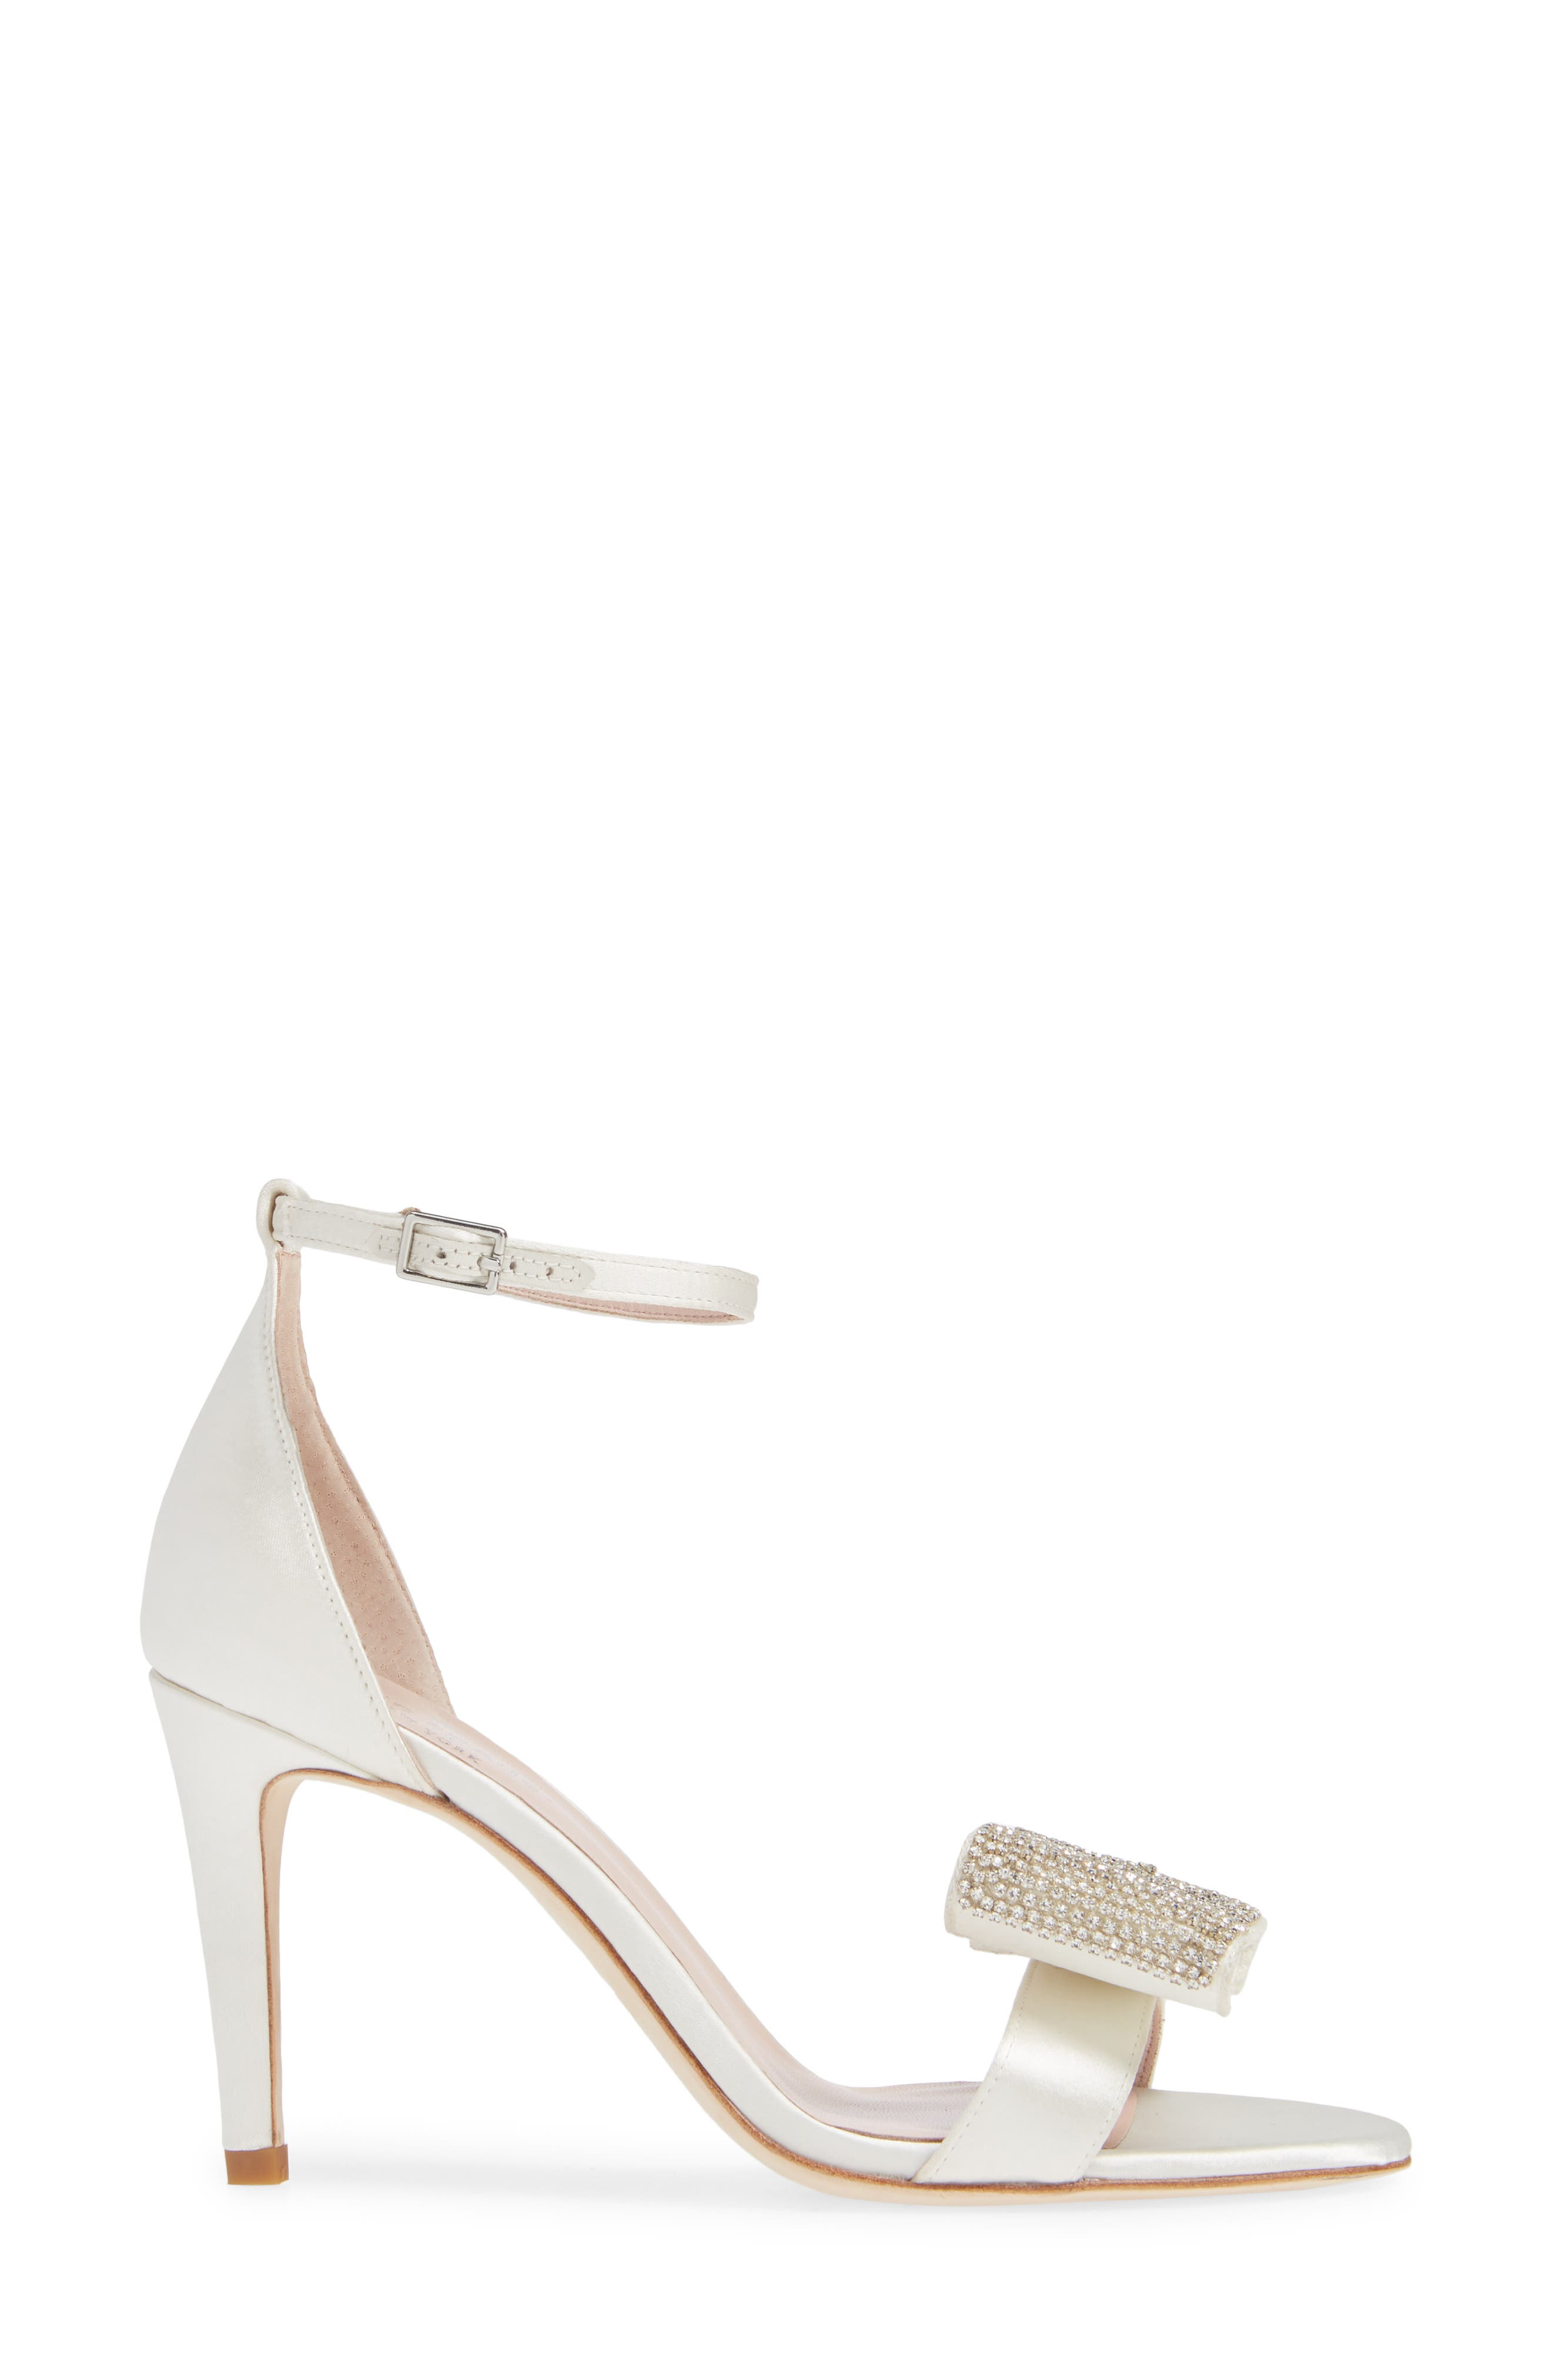 gweneth crystal bow ankle strap sandal,                             Alternate thumbnail 3, color,                             900